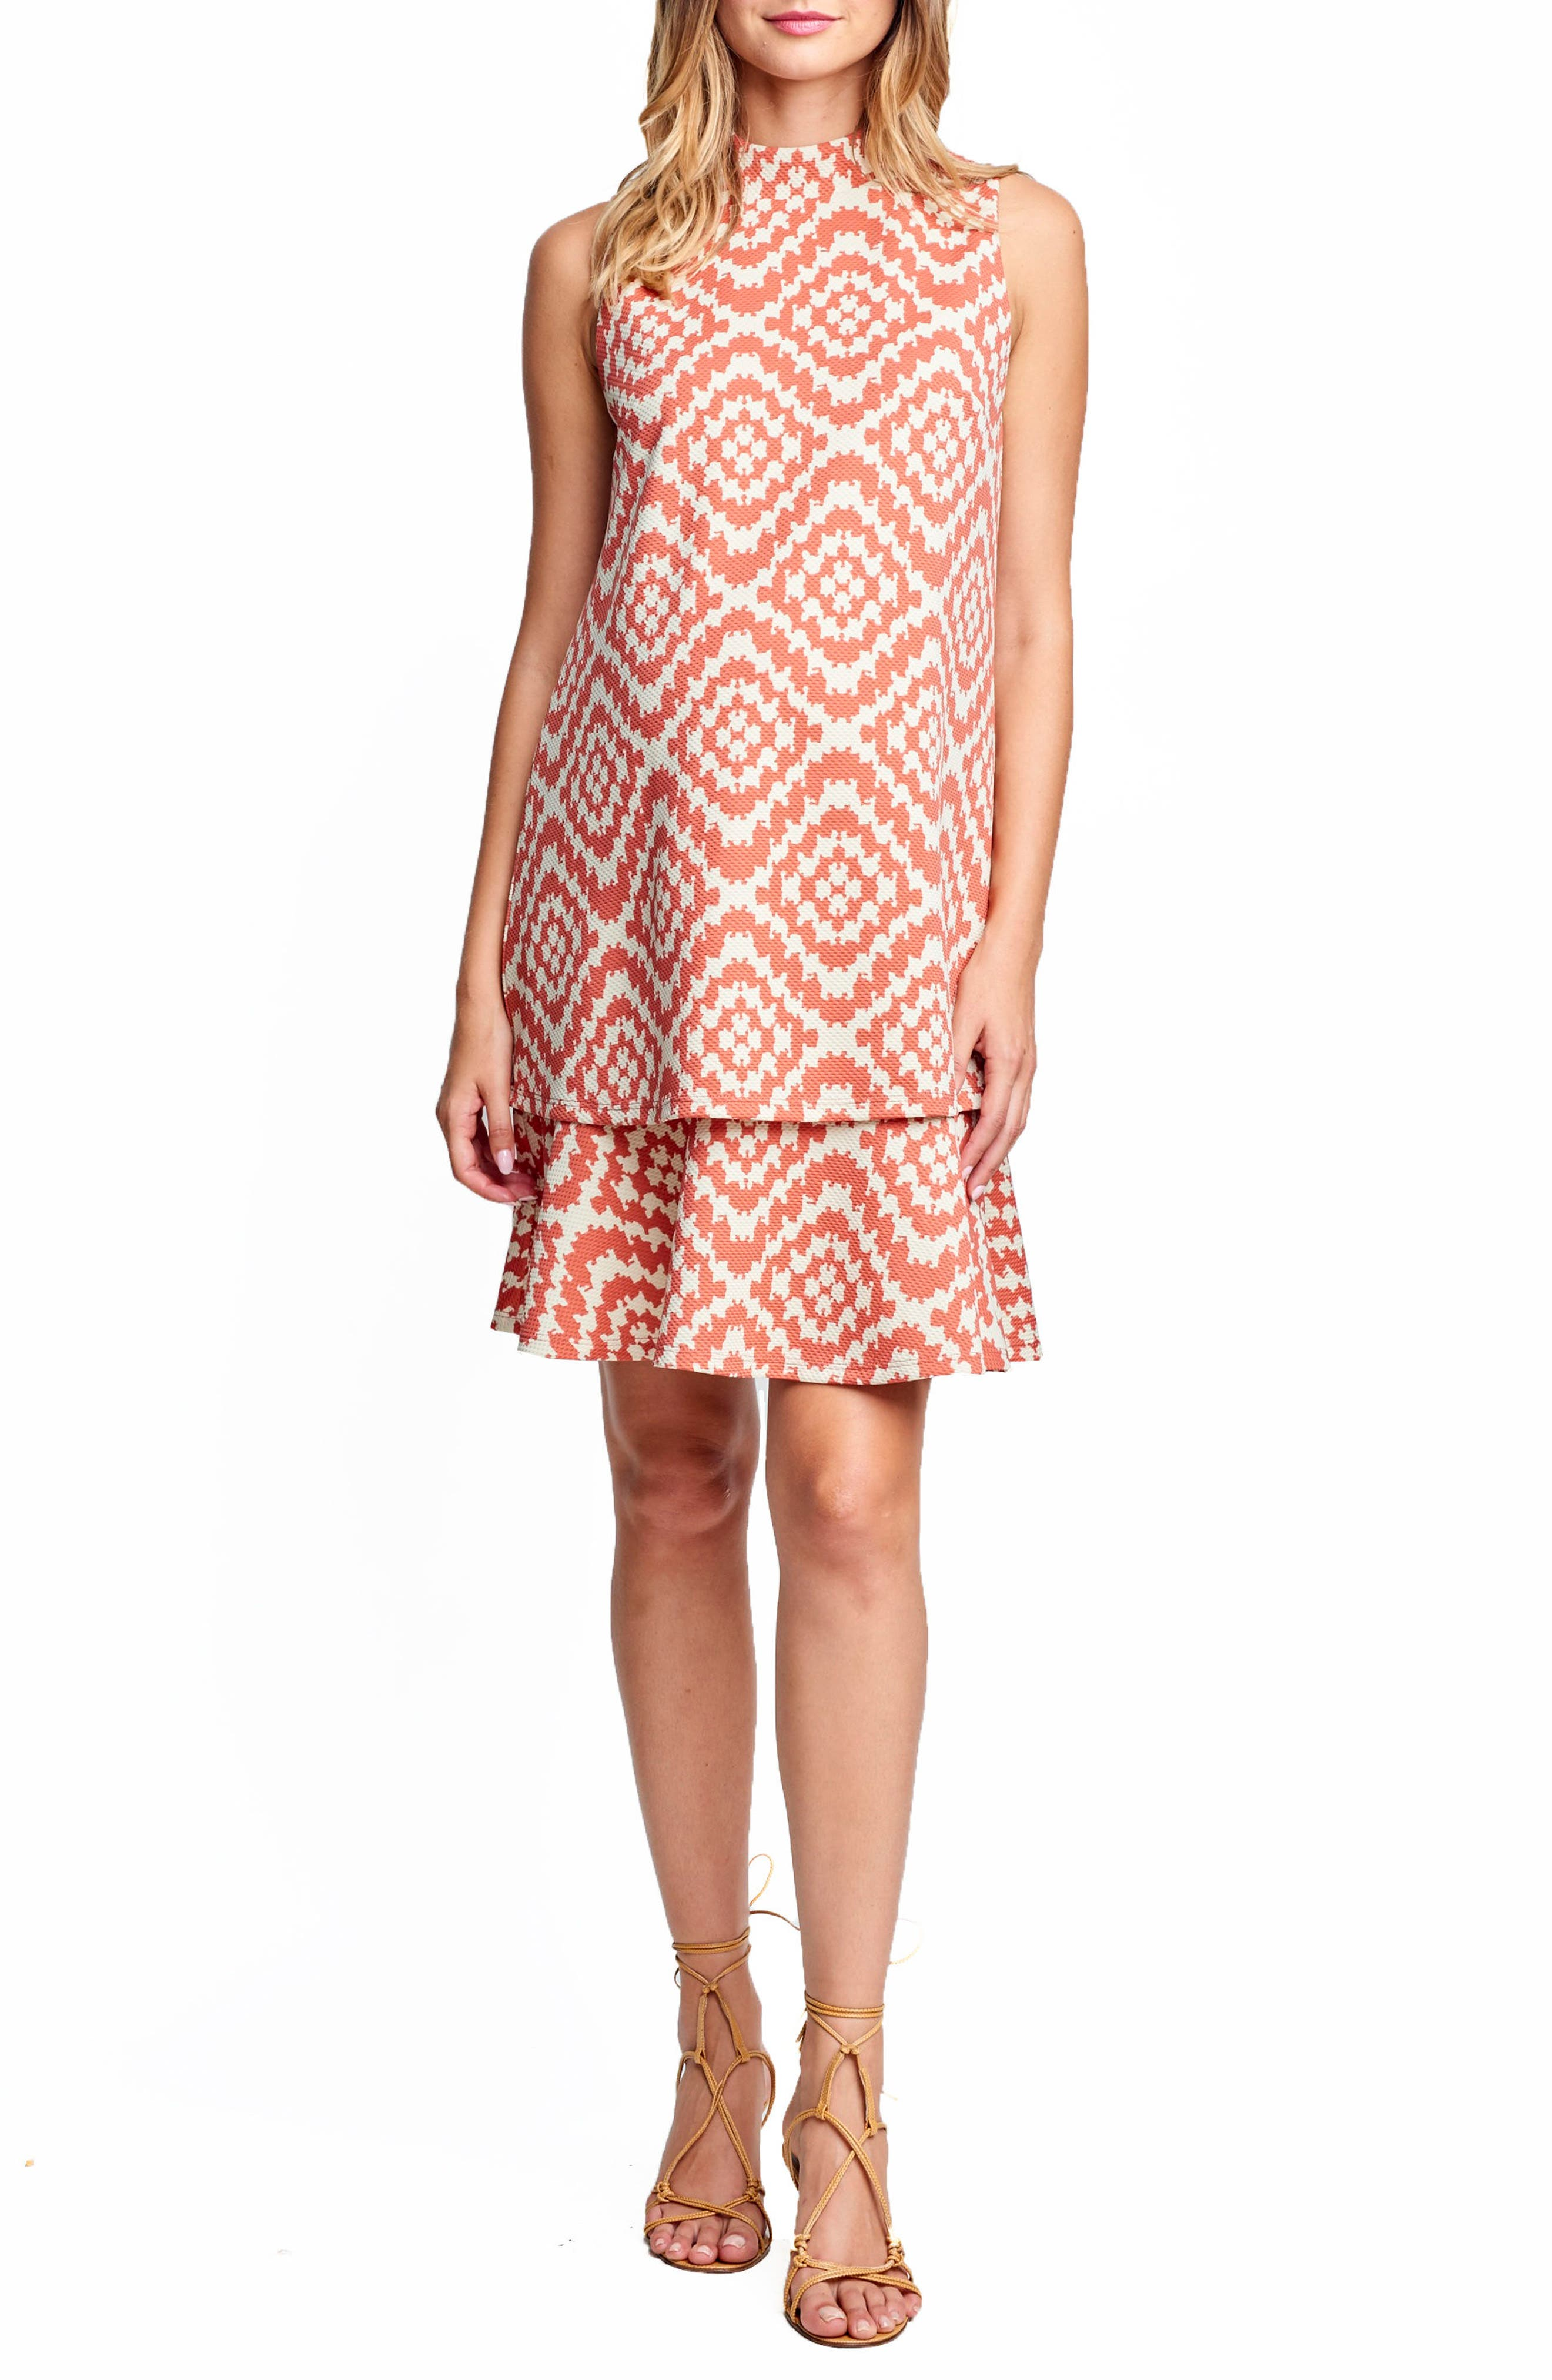 MATERNAL AMERICA 'Lucy' Maternity Dress, Main, color, APRICOT TAPESTRY